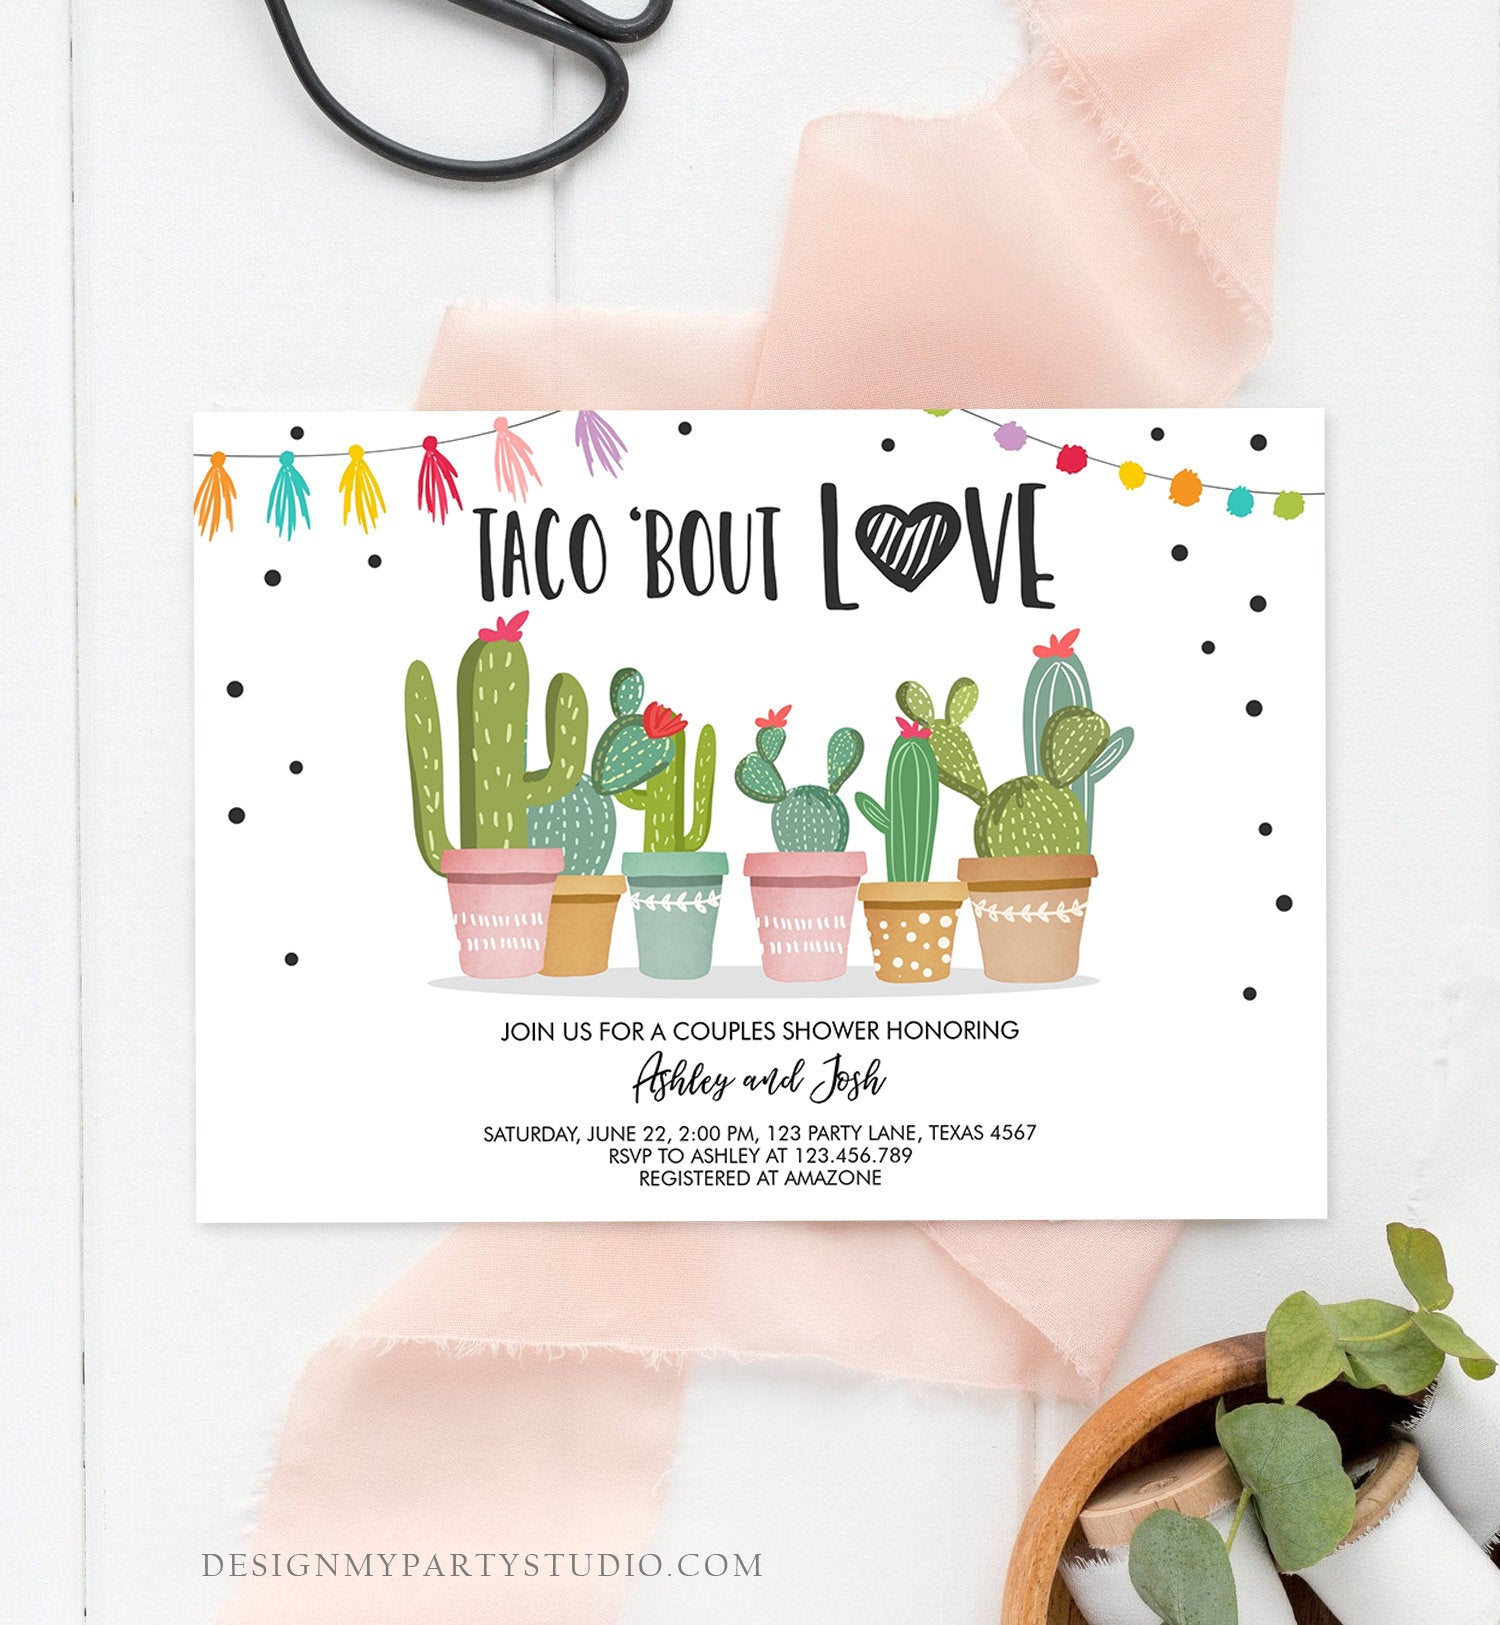 Editable Taco Bout Love Couples Shower Invitation Fiesta Cactus Succulent Mexican Green Pink Digital Download Corjl Template Printable 0254